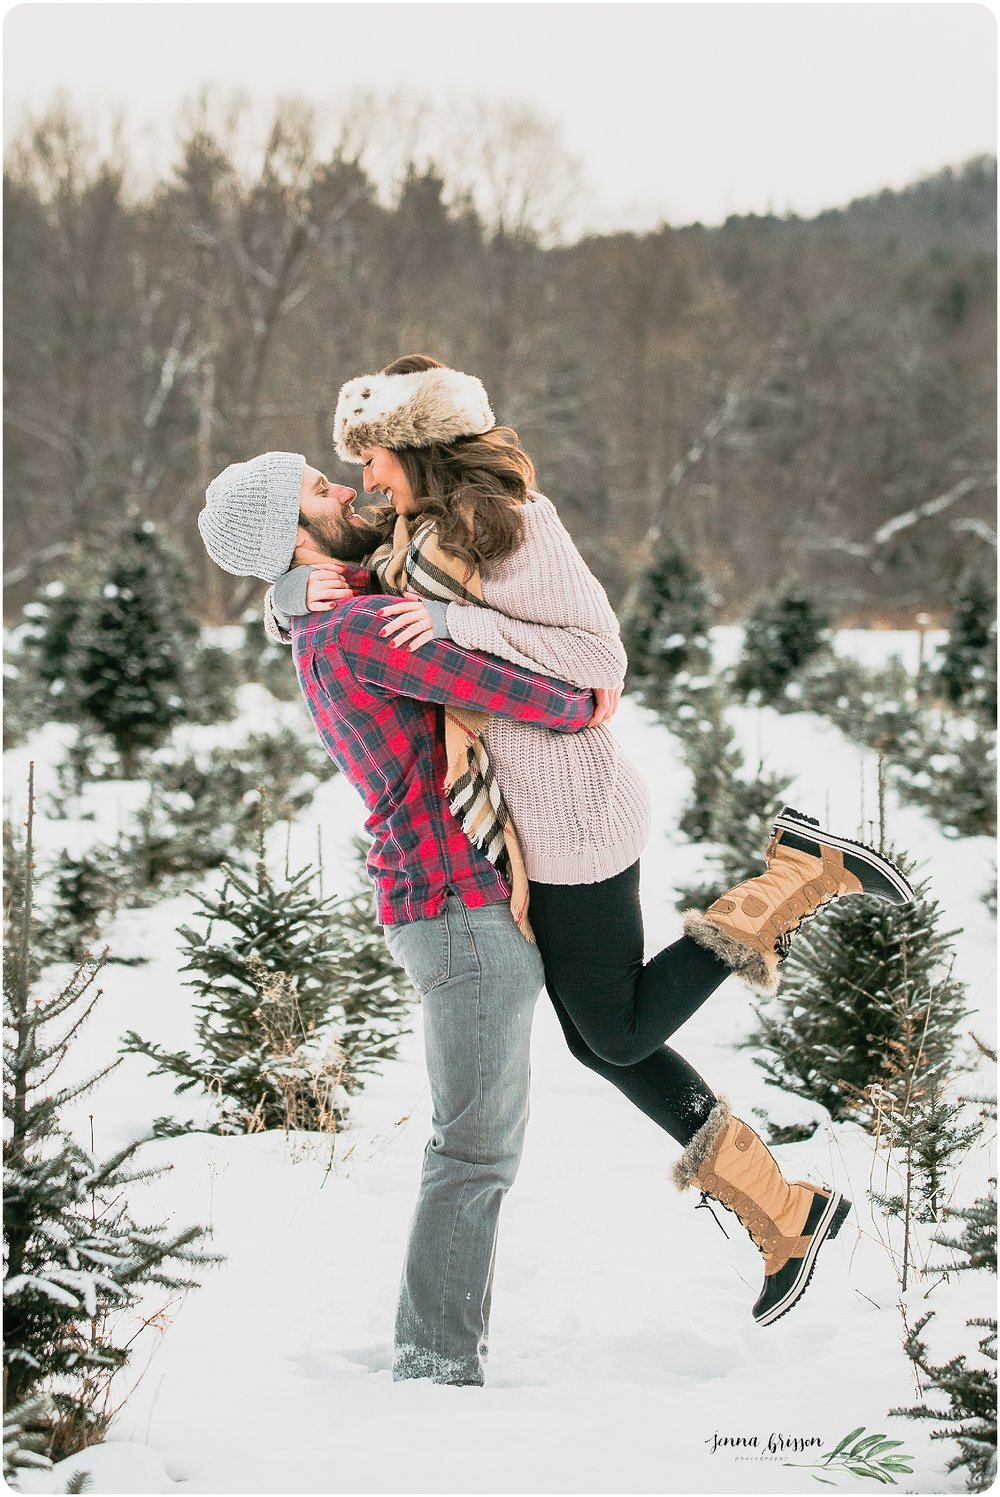 Romantic Winter Photo Vermont